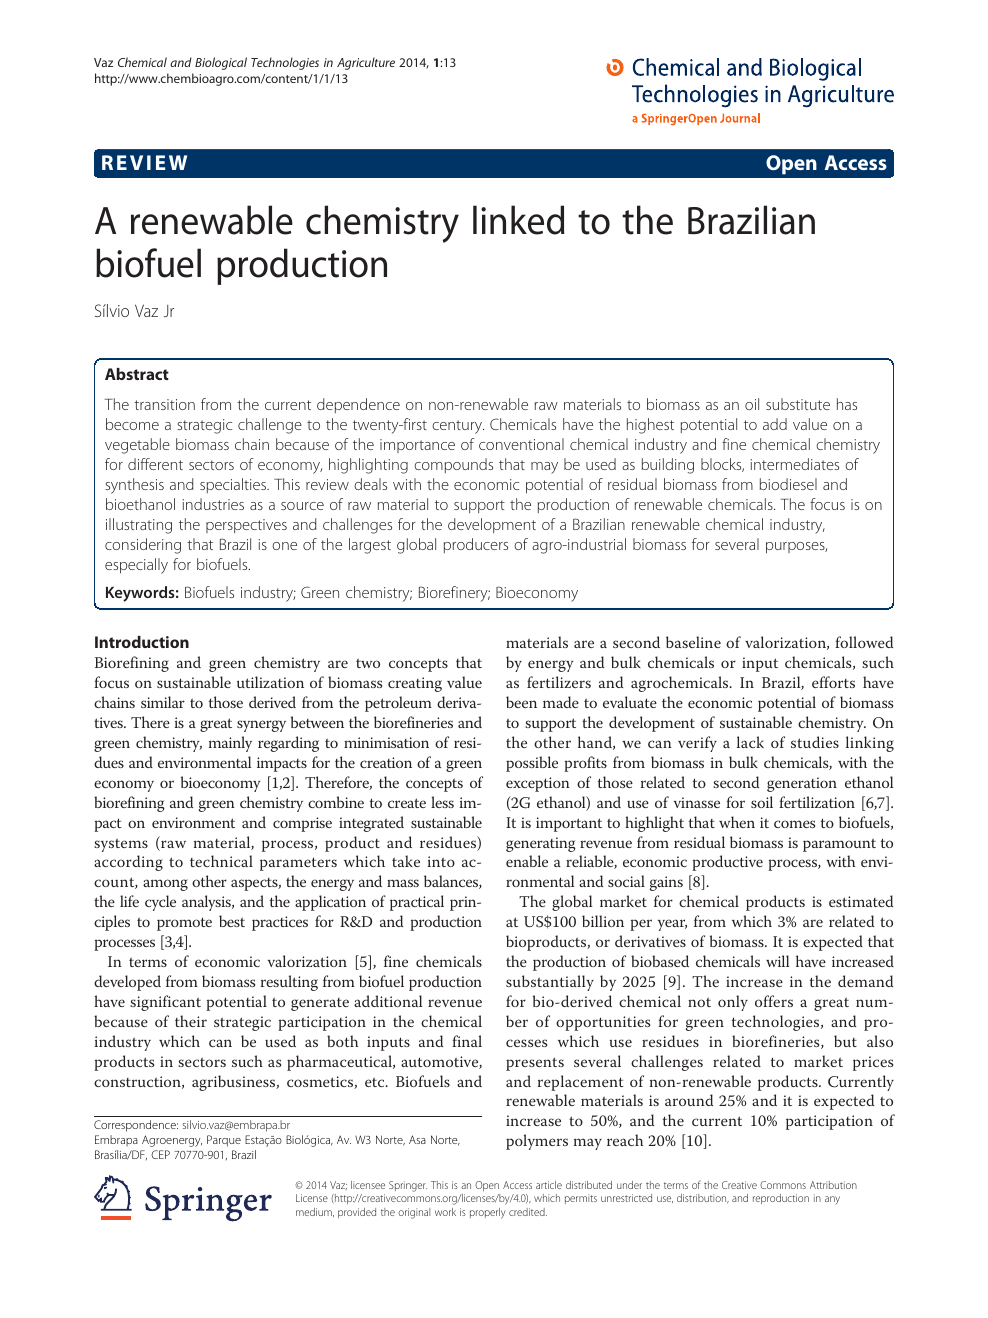 A renewable chemistry linked to the Brazilian biofuel